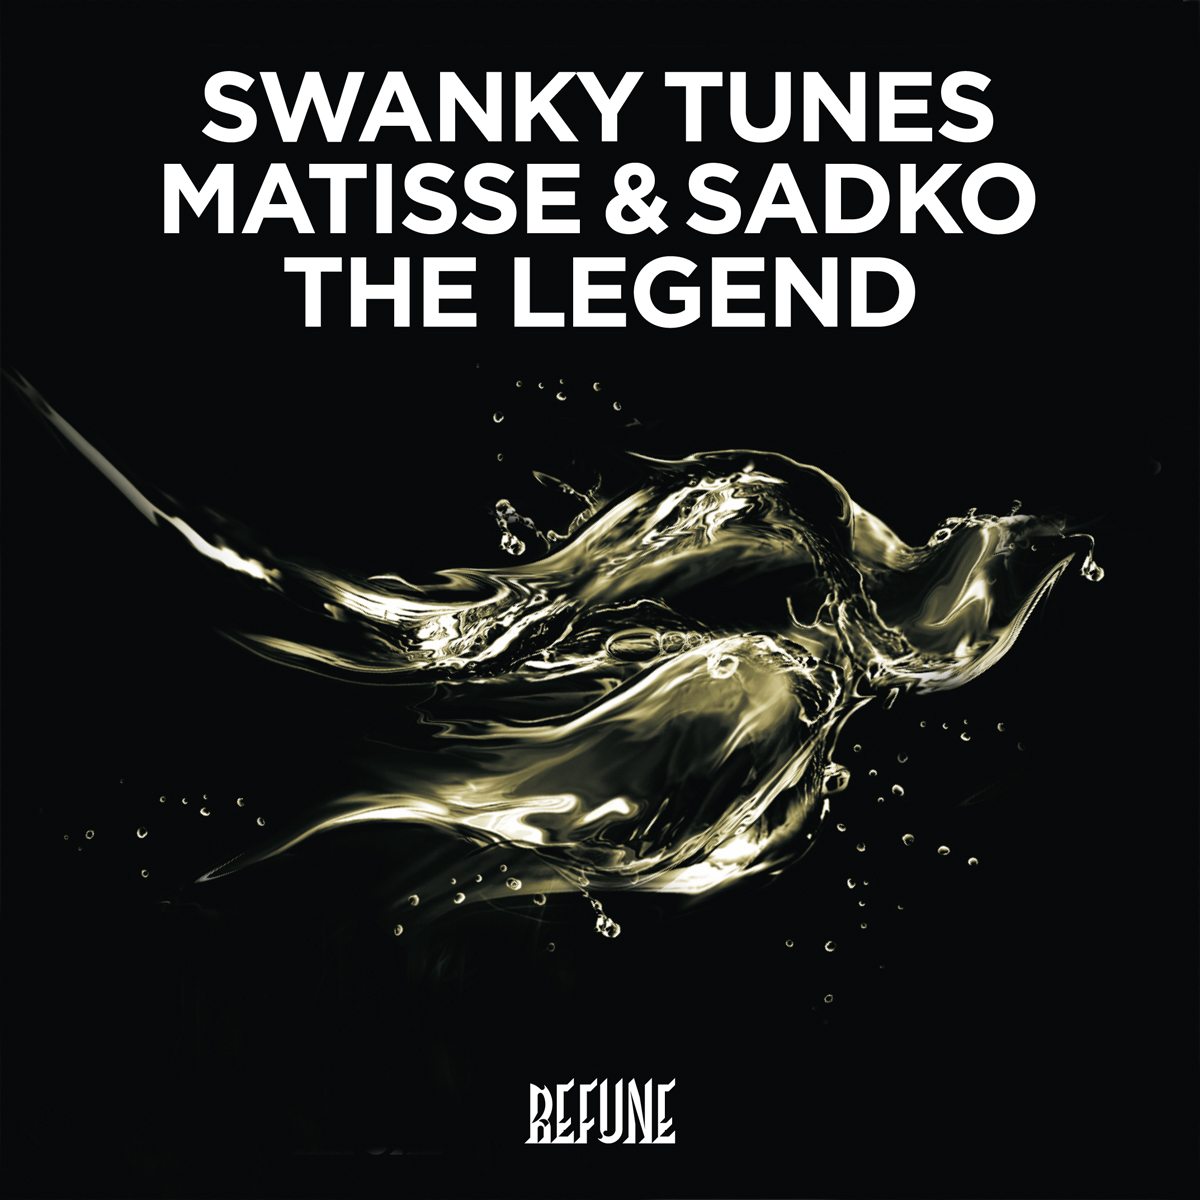 Preview: Swanky Tunes feat. Matisse & Sadko - The Legend [Refune Records]